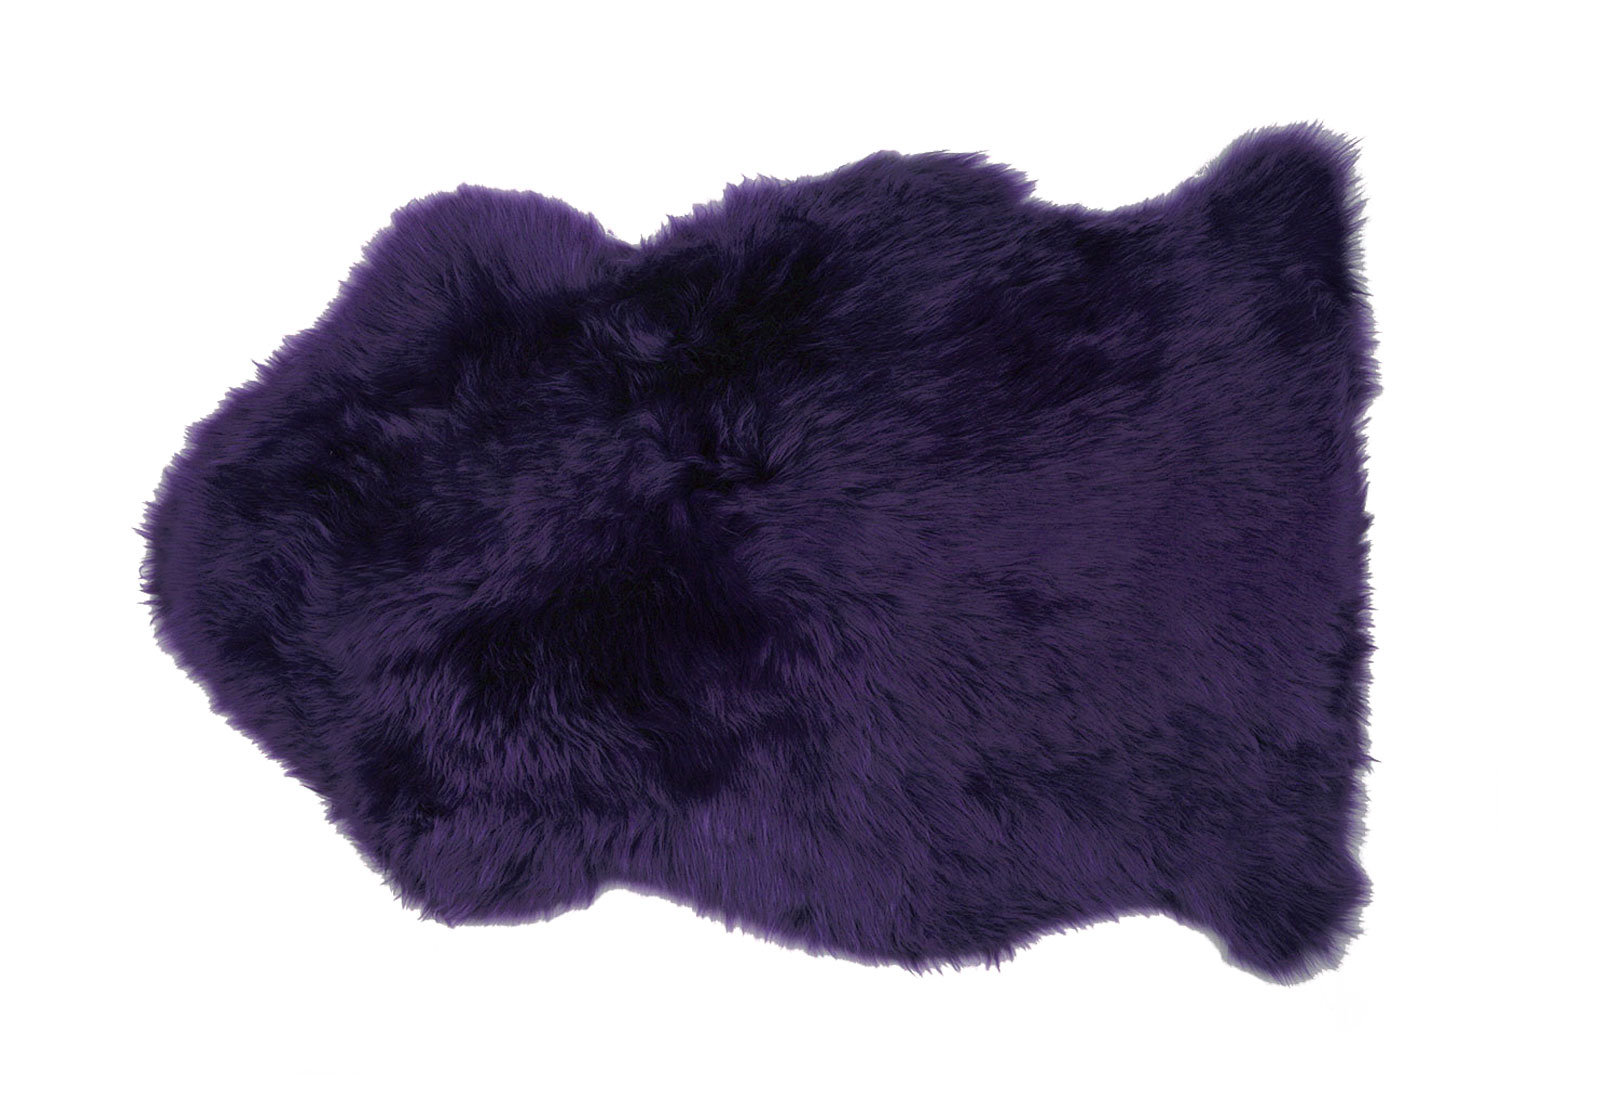 Dark Purple Sheepskin Fur Rug